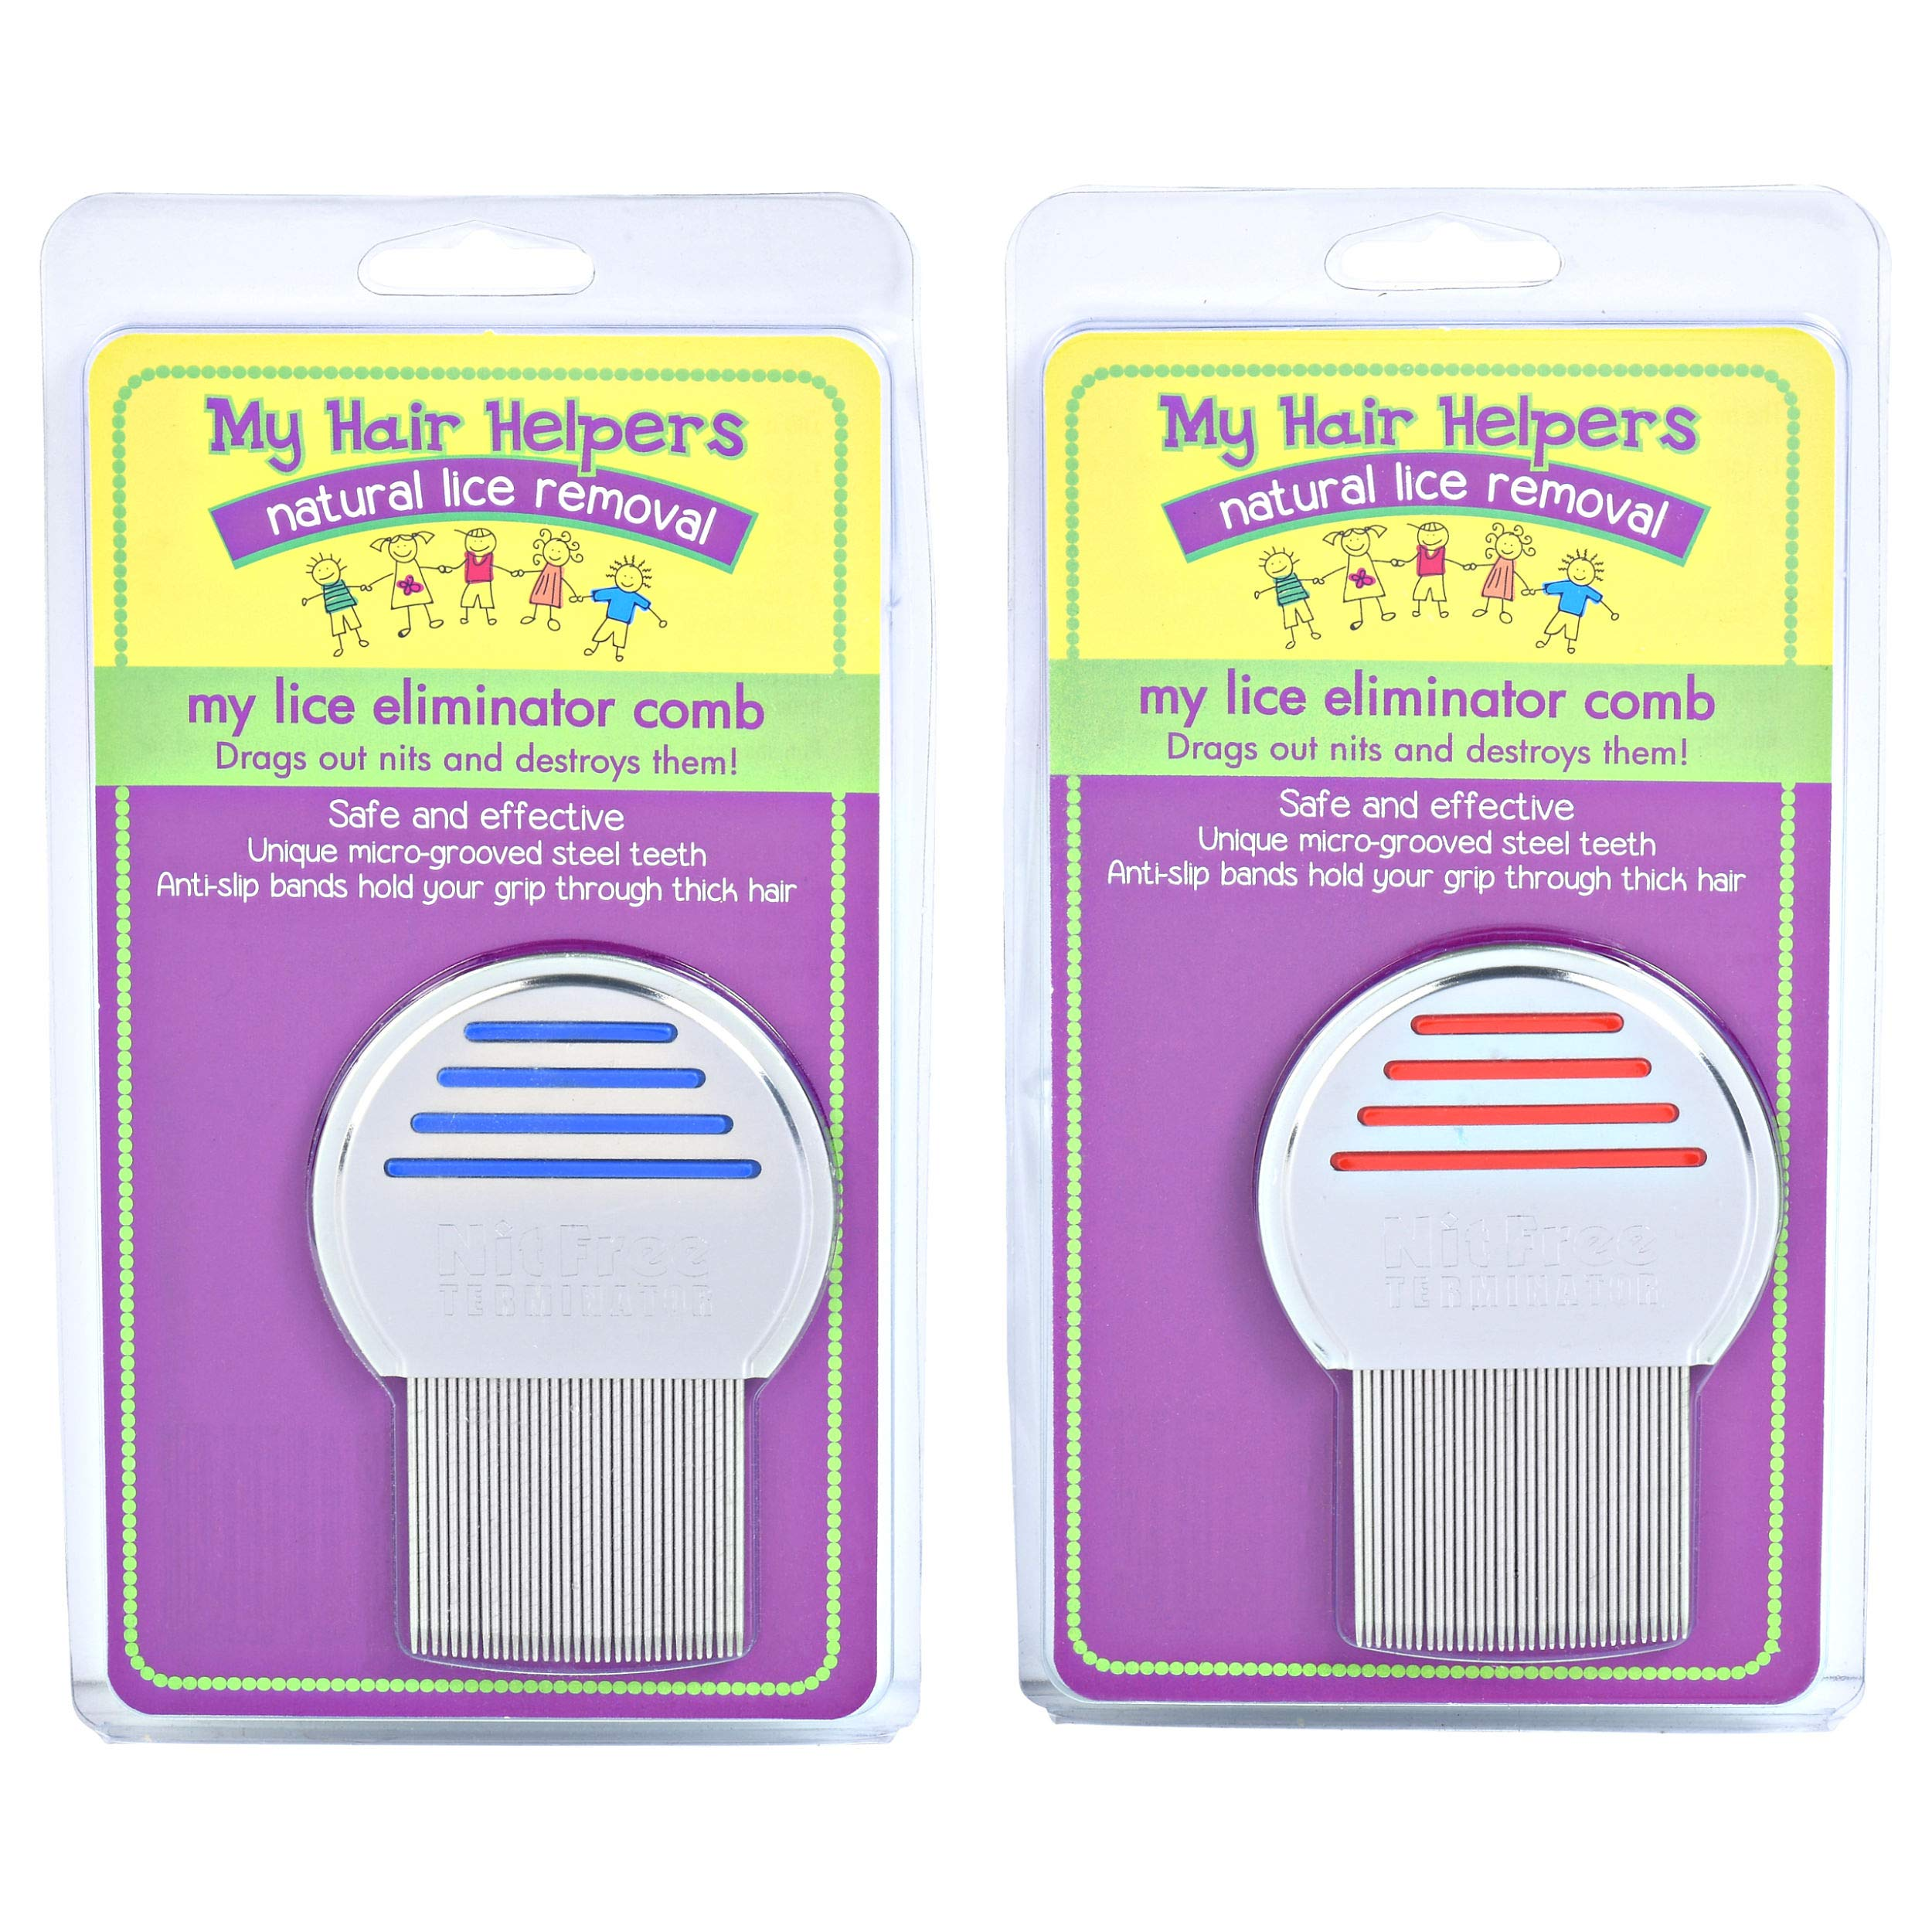 Lice Treatment Comb Stainless Steel Effectively Removes Louse and Nits with Head Lice (2) by MY HAIR HELPERS NATURAL LICE REMOVAL